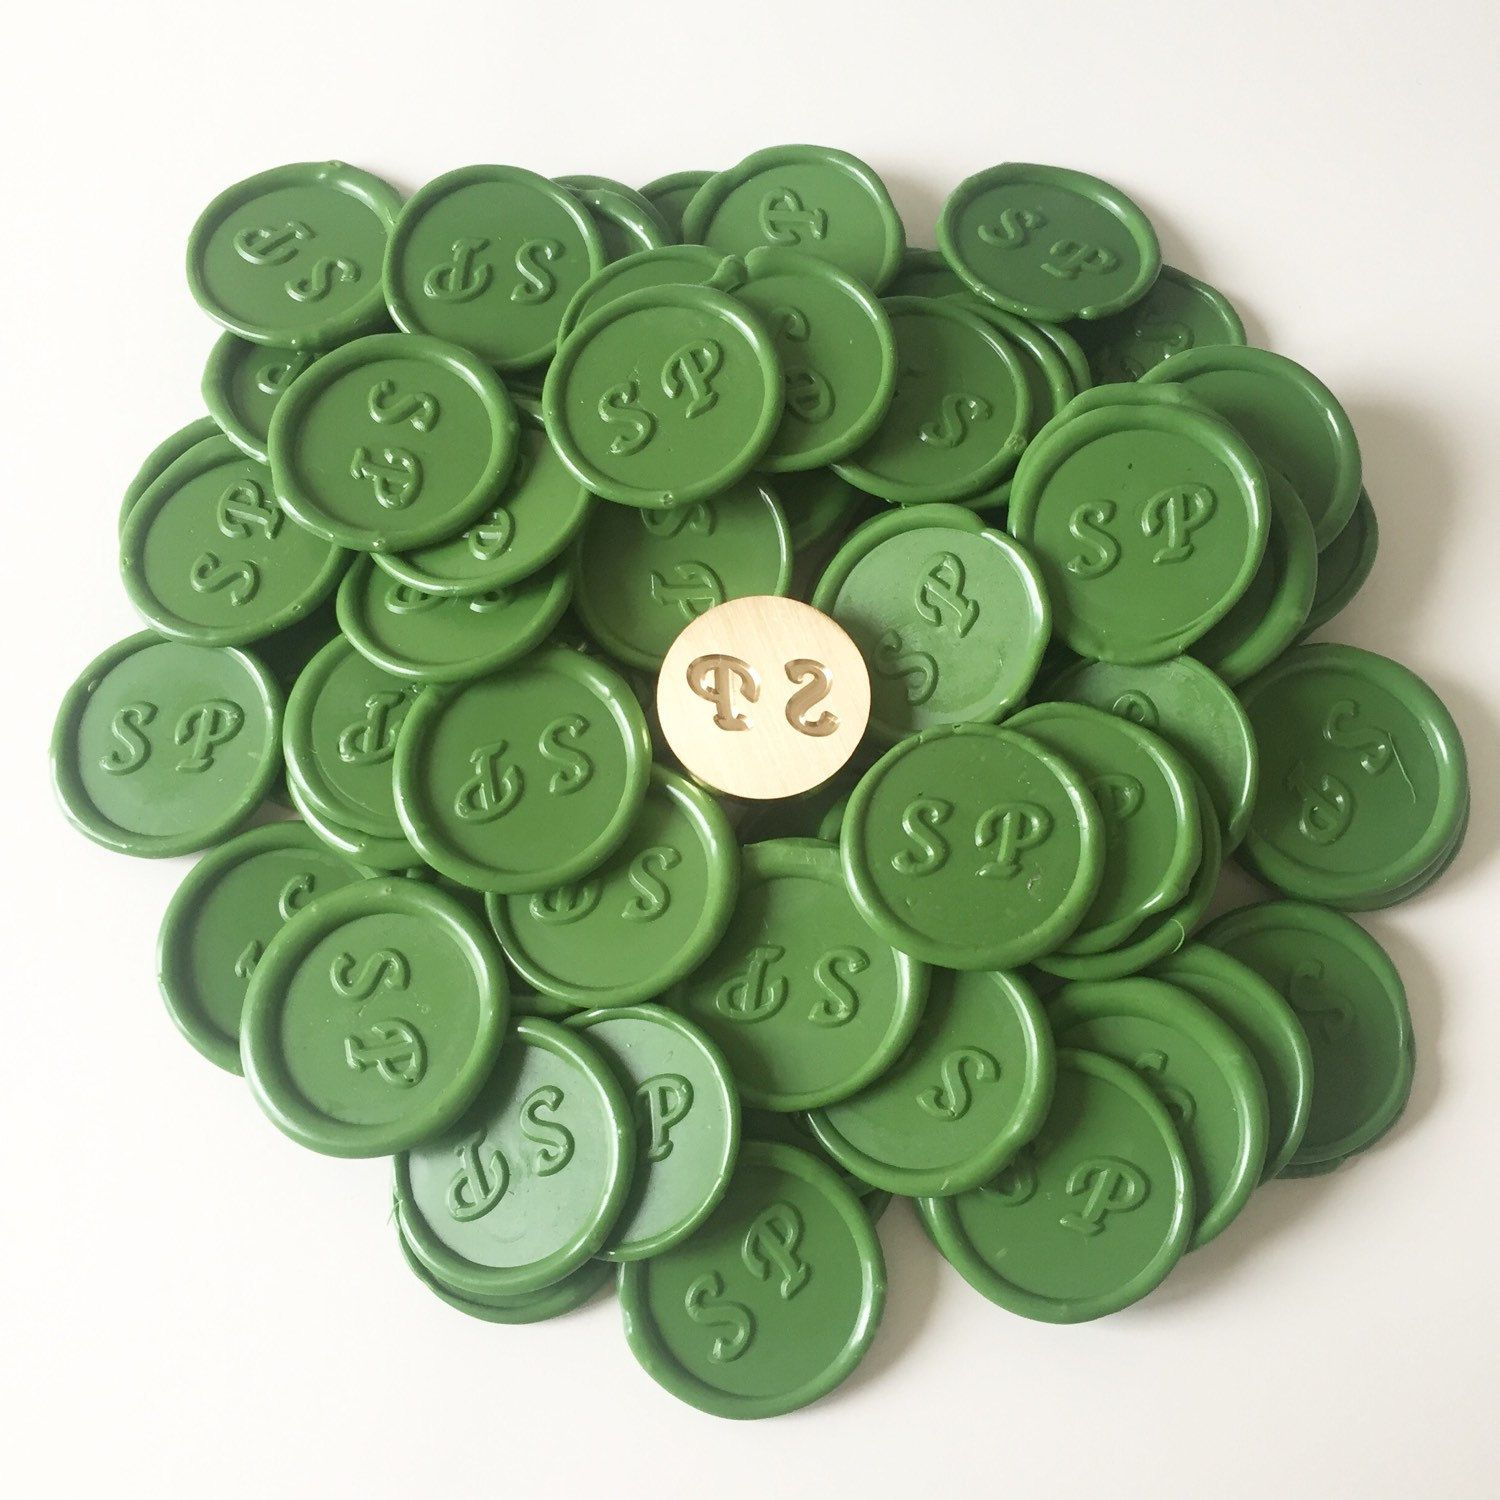 Handmade Wax Seal Adhesive stickers for 50